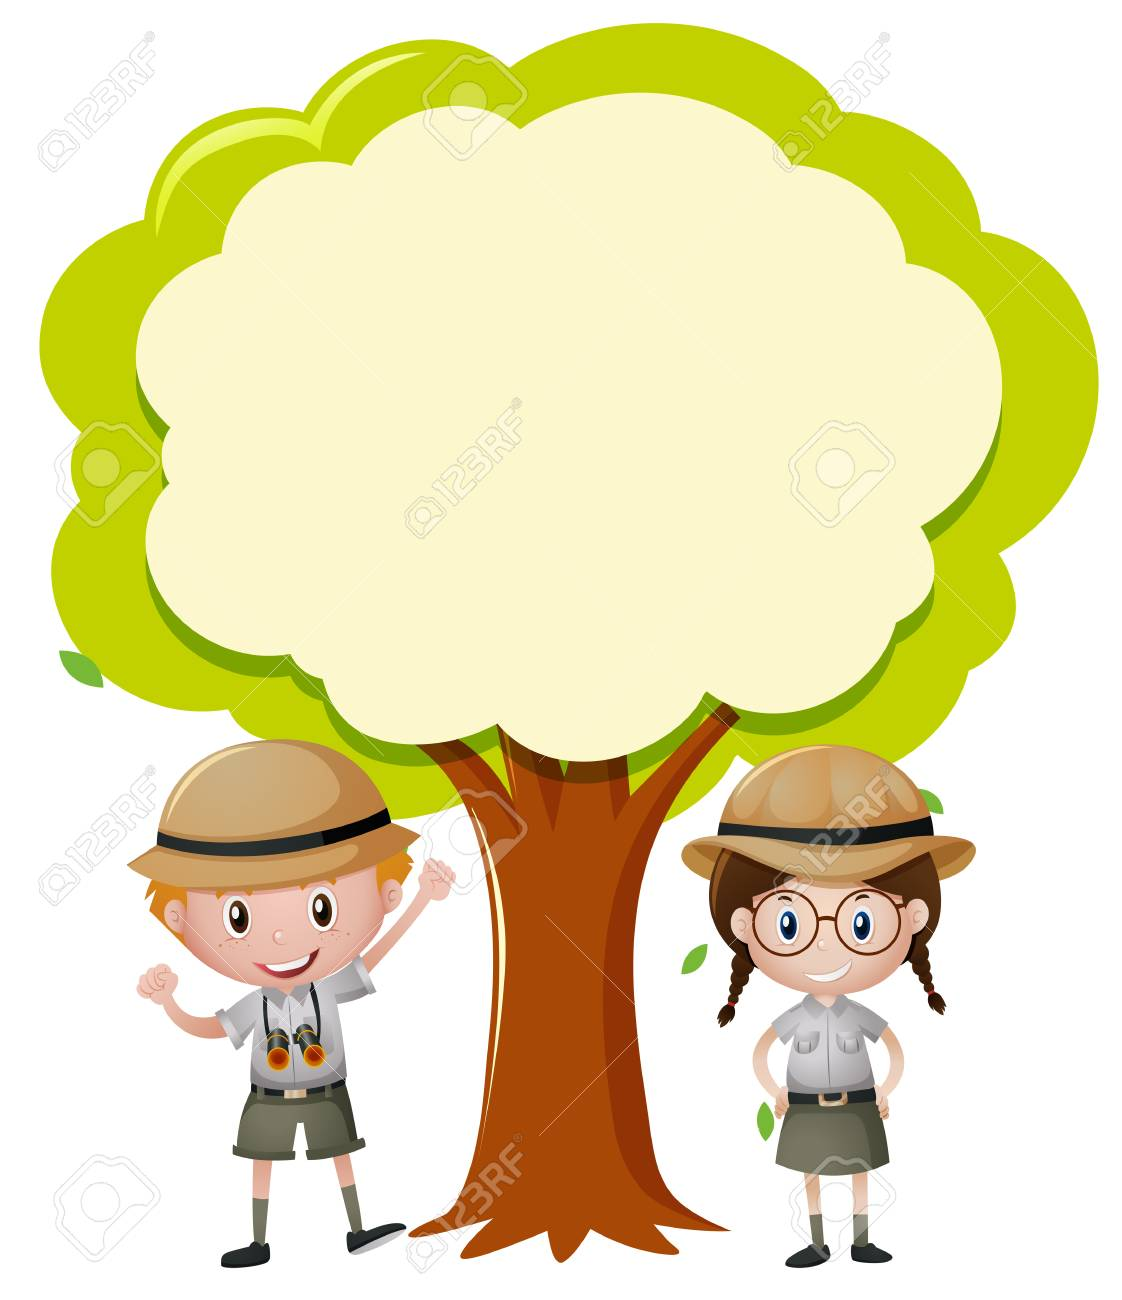 border template with boy and girl under the tree illustration